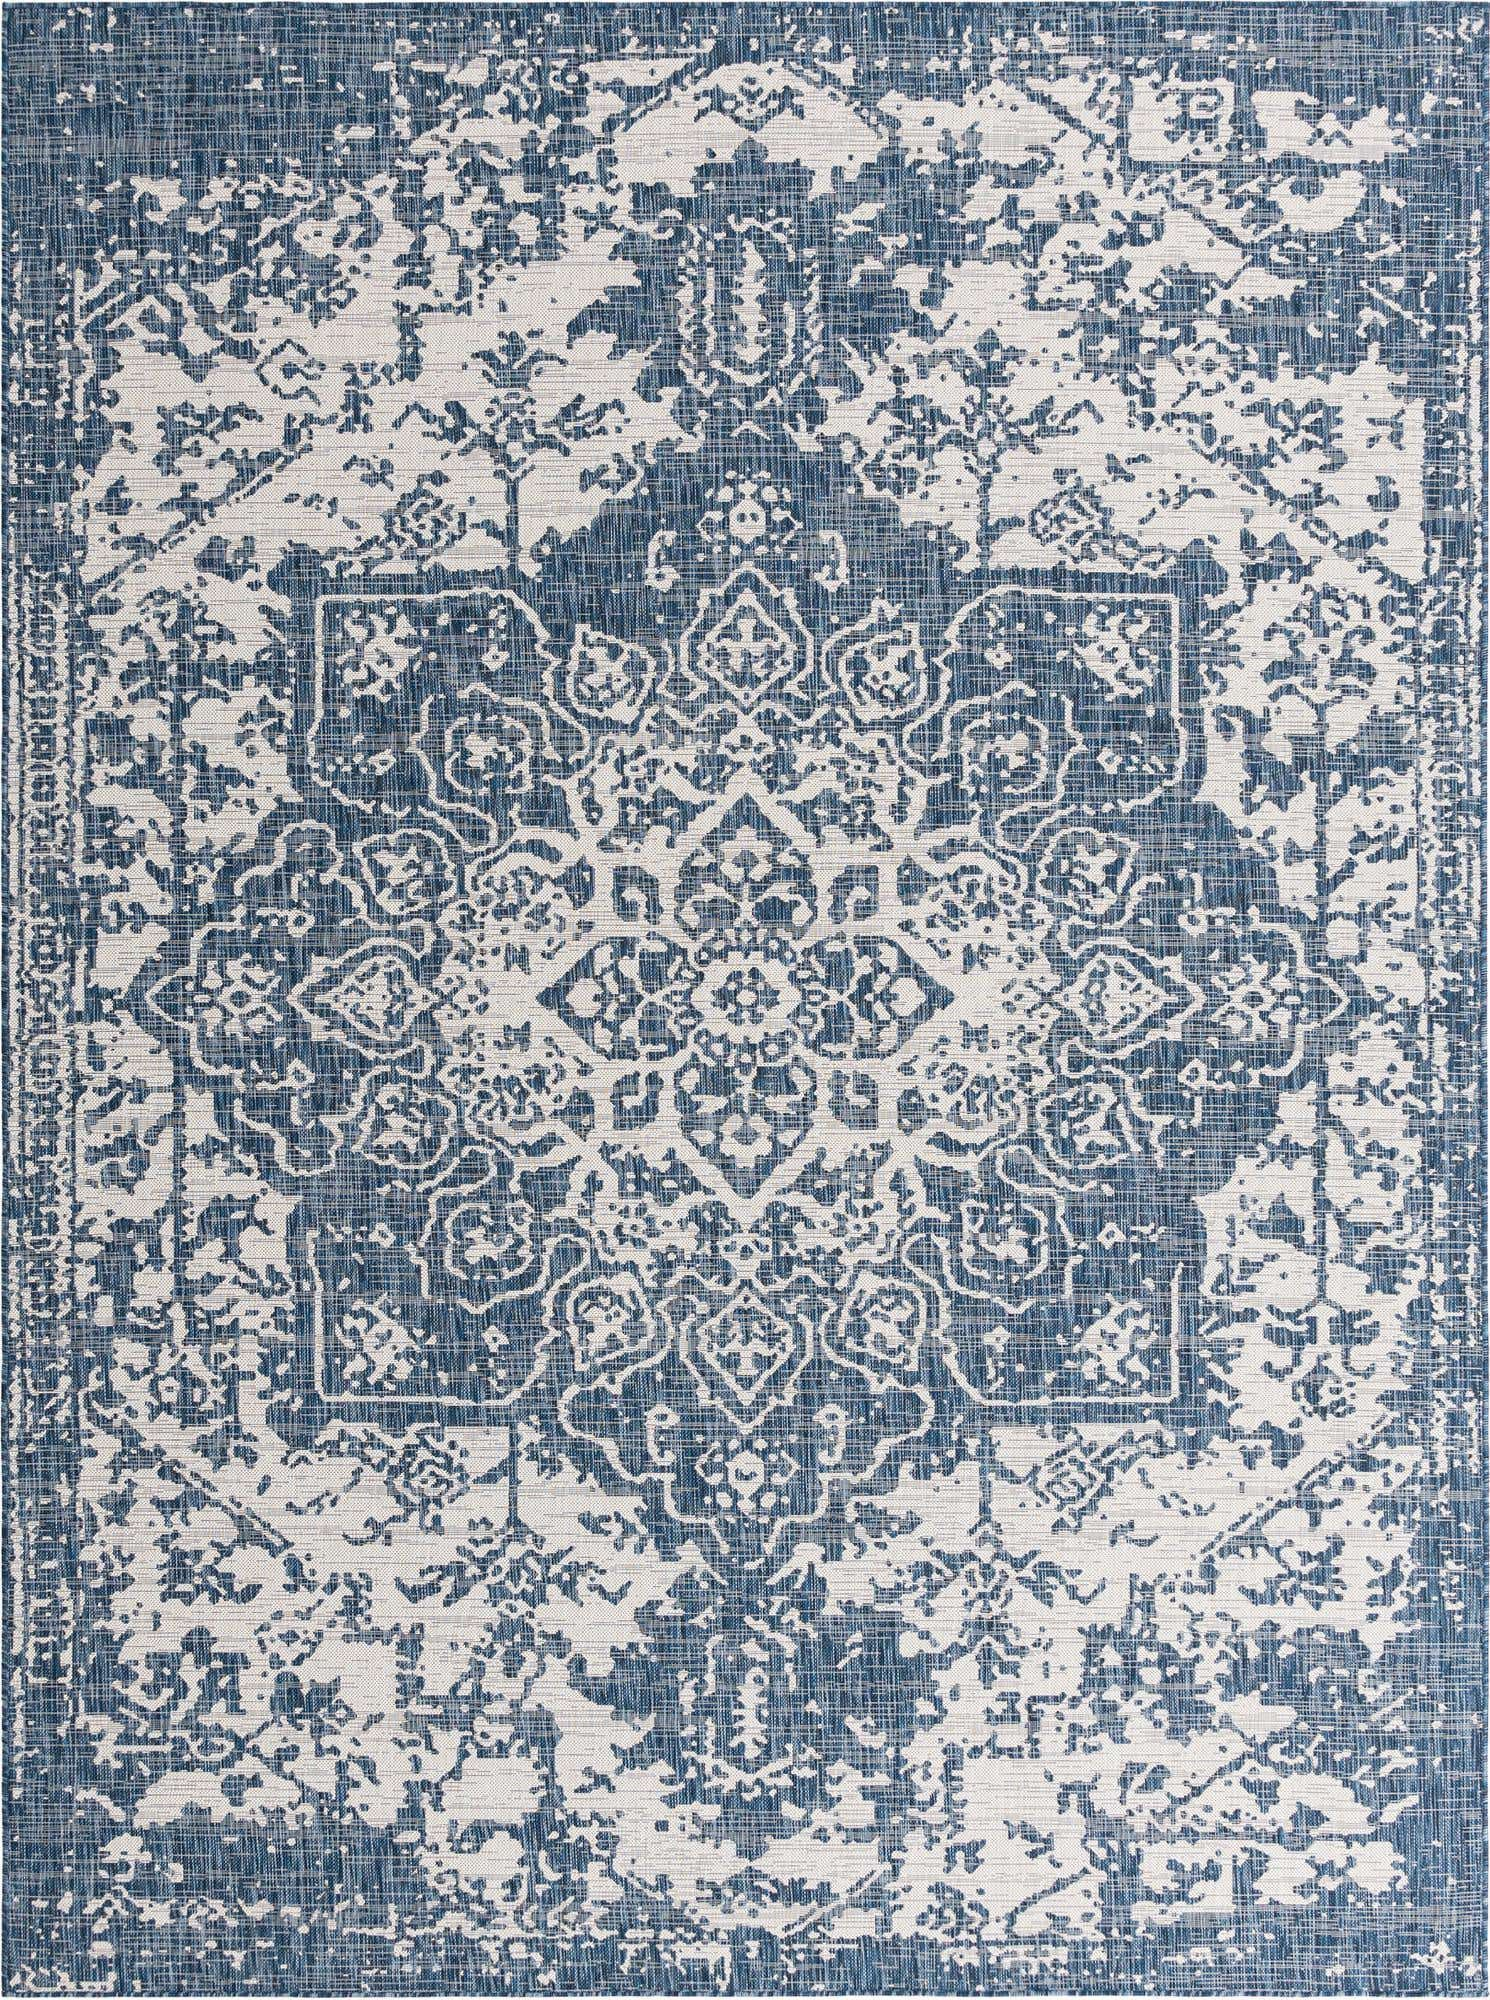 Blue 9 X 12 Jill Zarin Outdoor Rug Rugs Com In 2020 Jill Zarin Outdoor Rugs Outdoor Rugs Patio